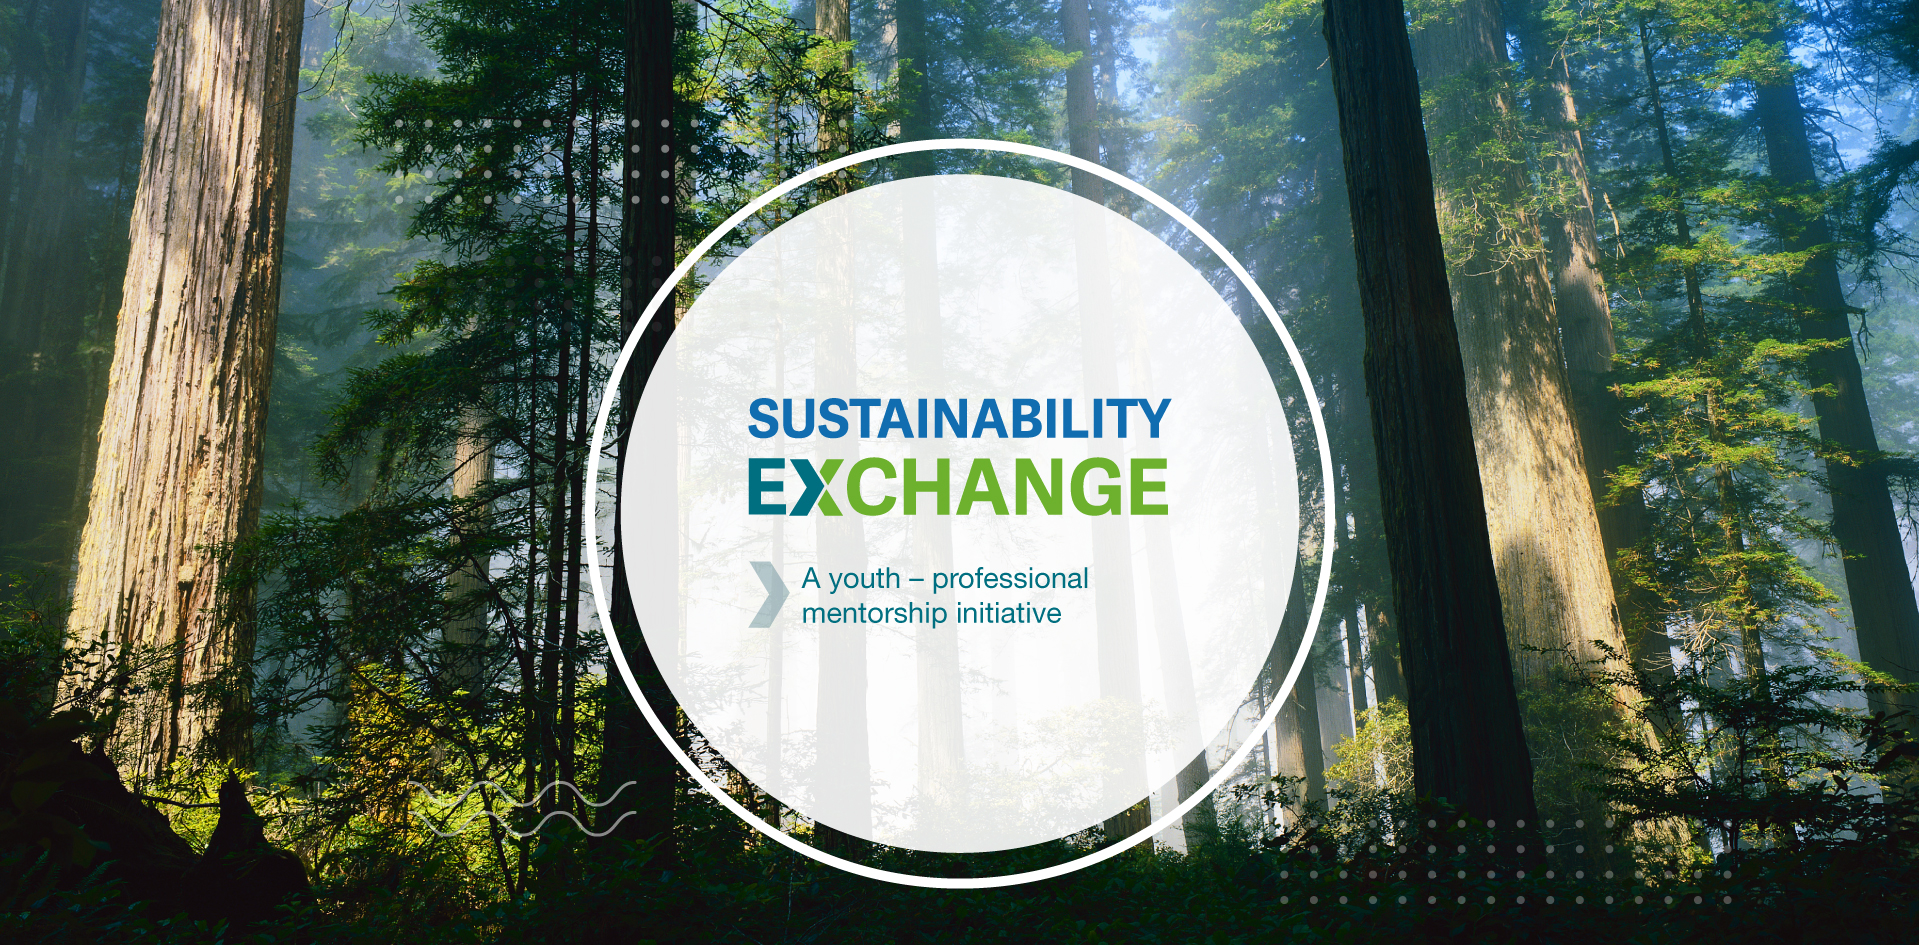 Sustainability Exchange throws up fresh ideas for sustainability